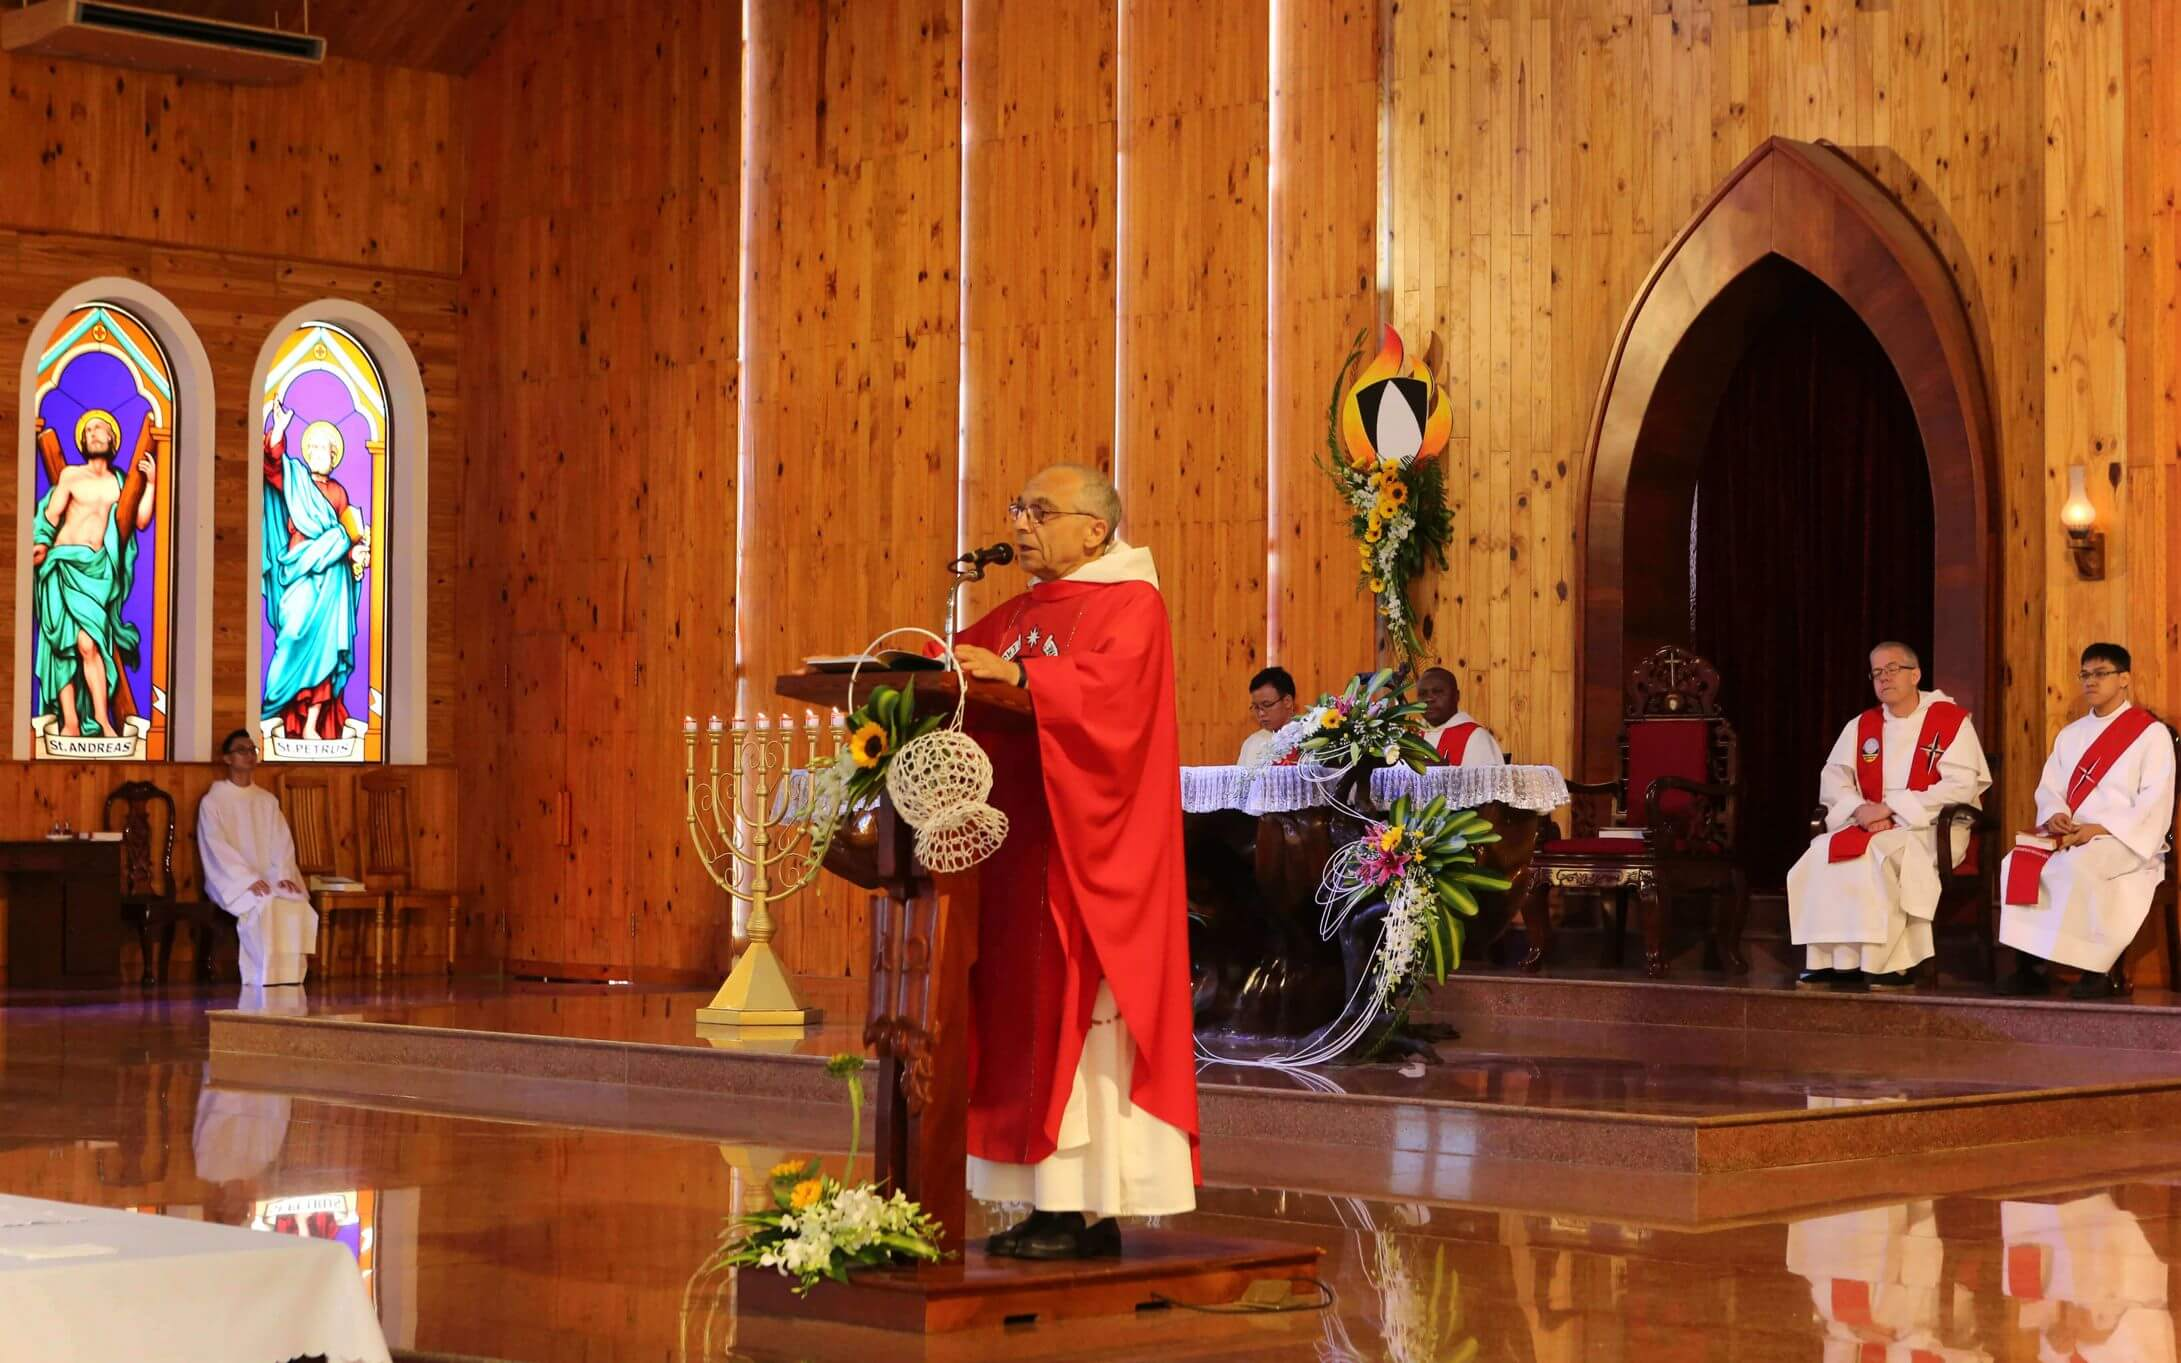 Opening Mass of the Chapter – Bro. Bruno Cadoré, Master of the Order (2019)